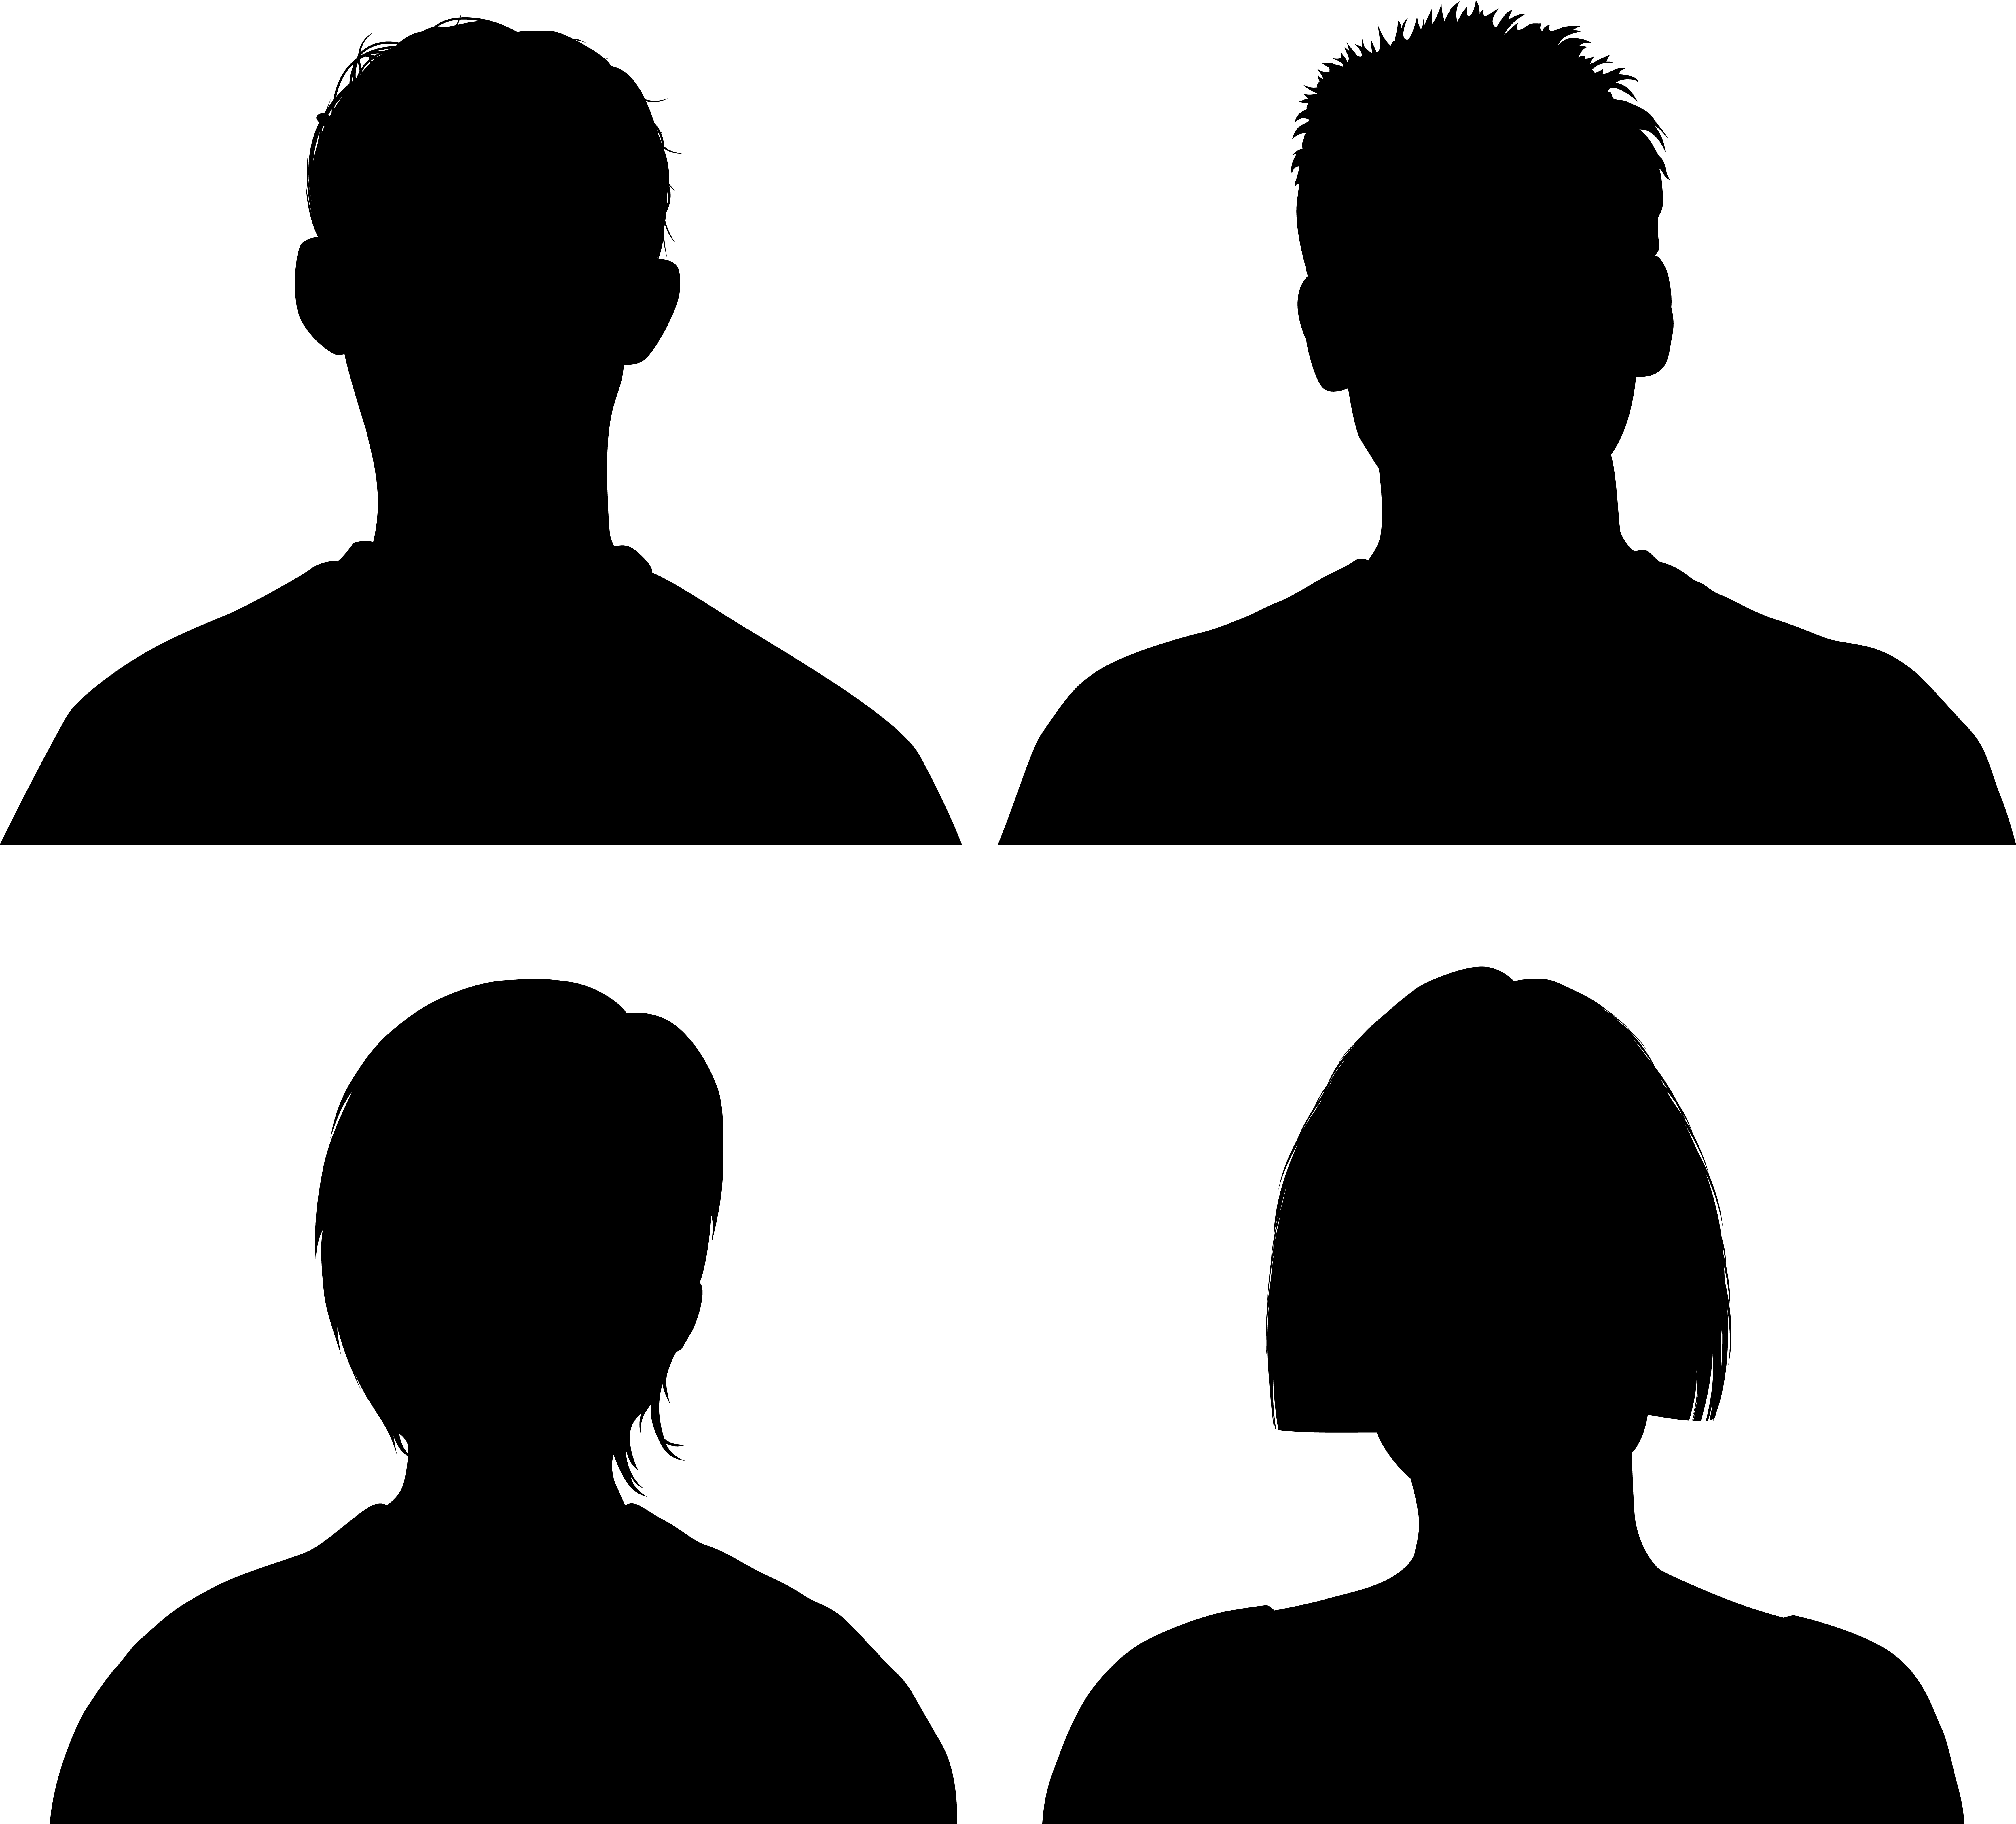 Human face silhouette